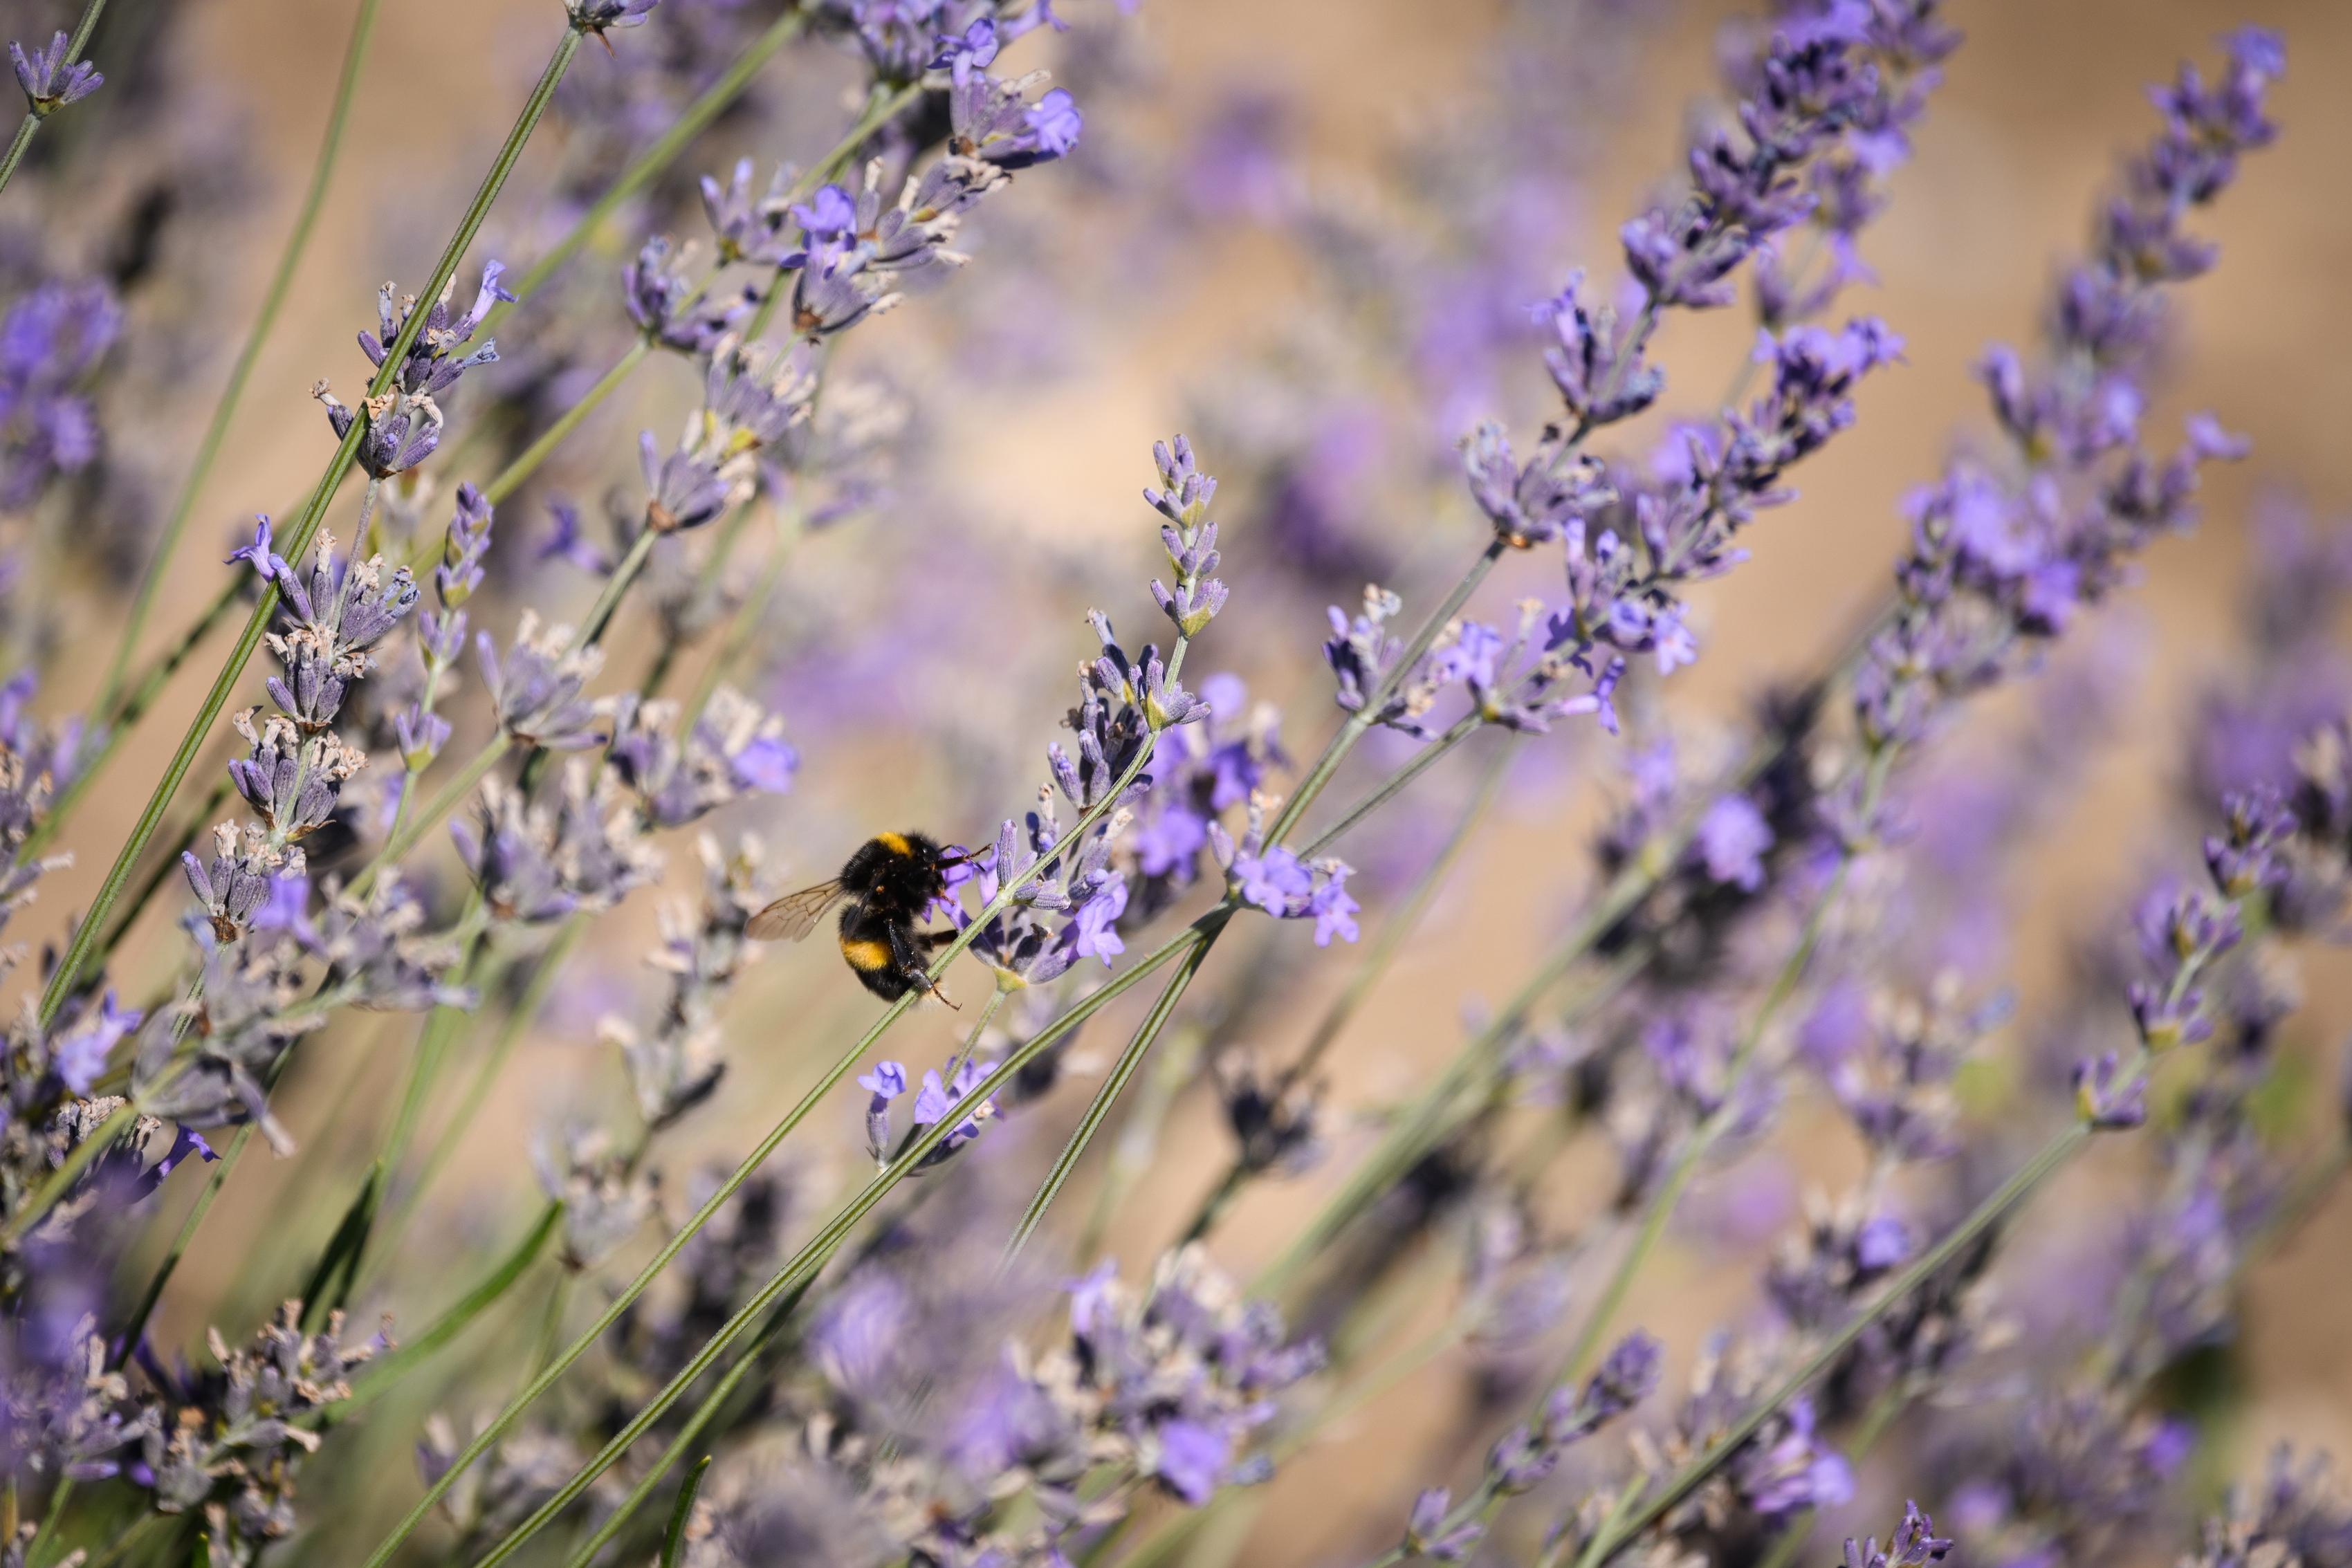 bumble bee on lavender flowers